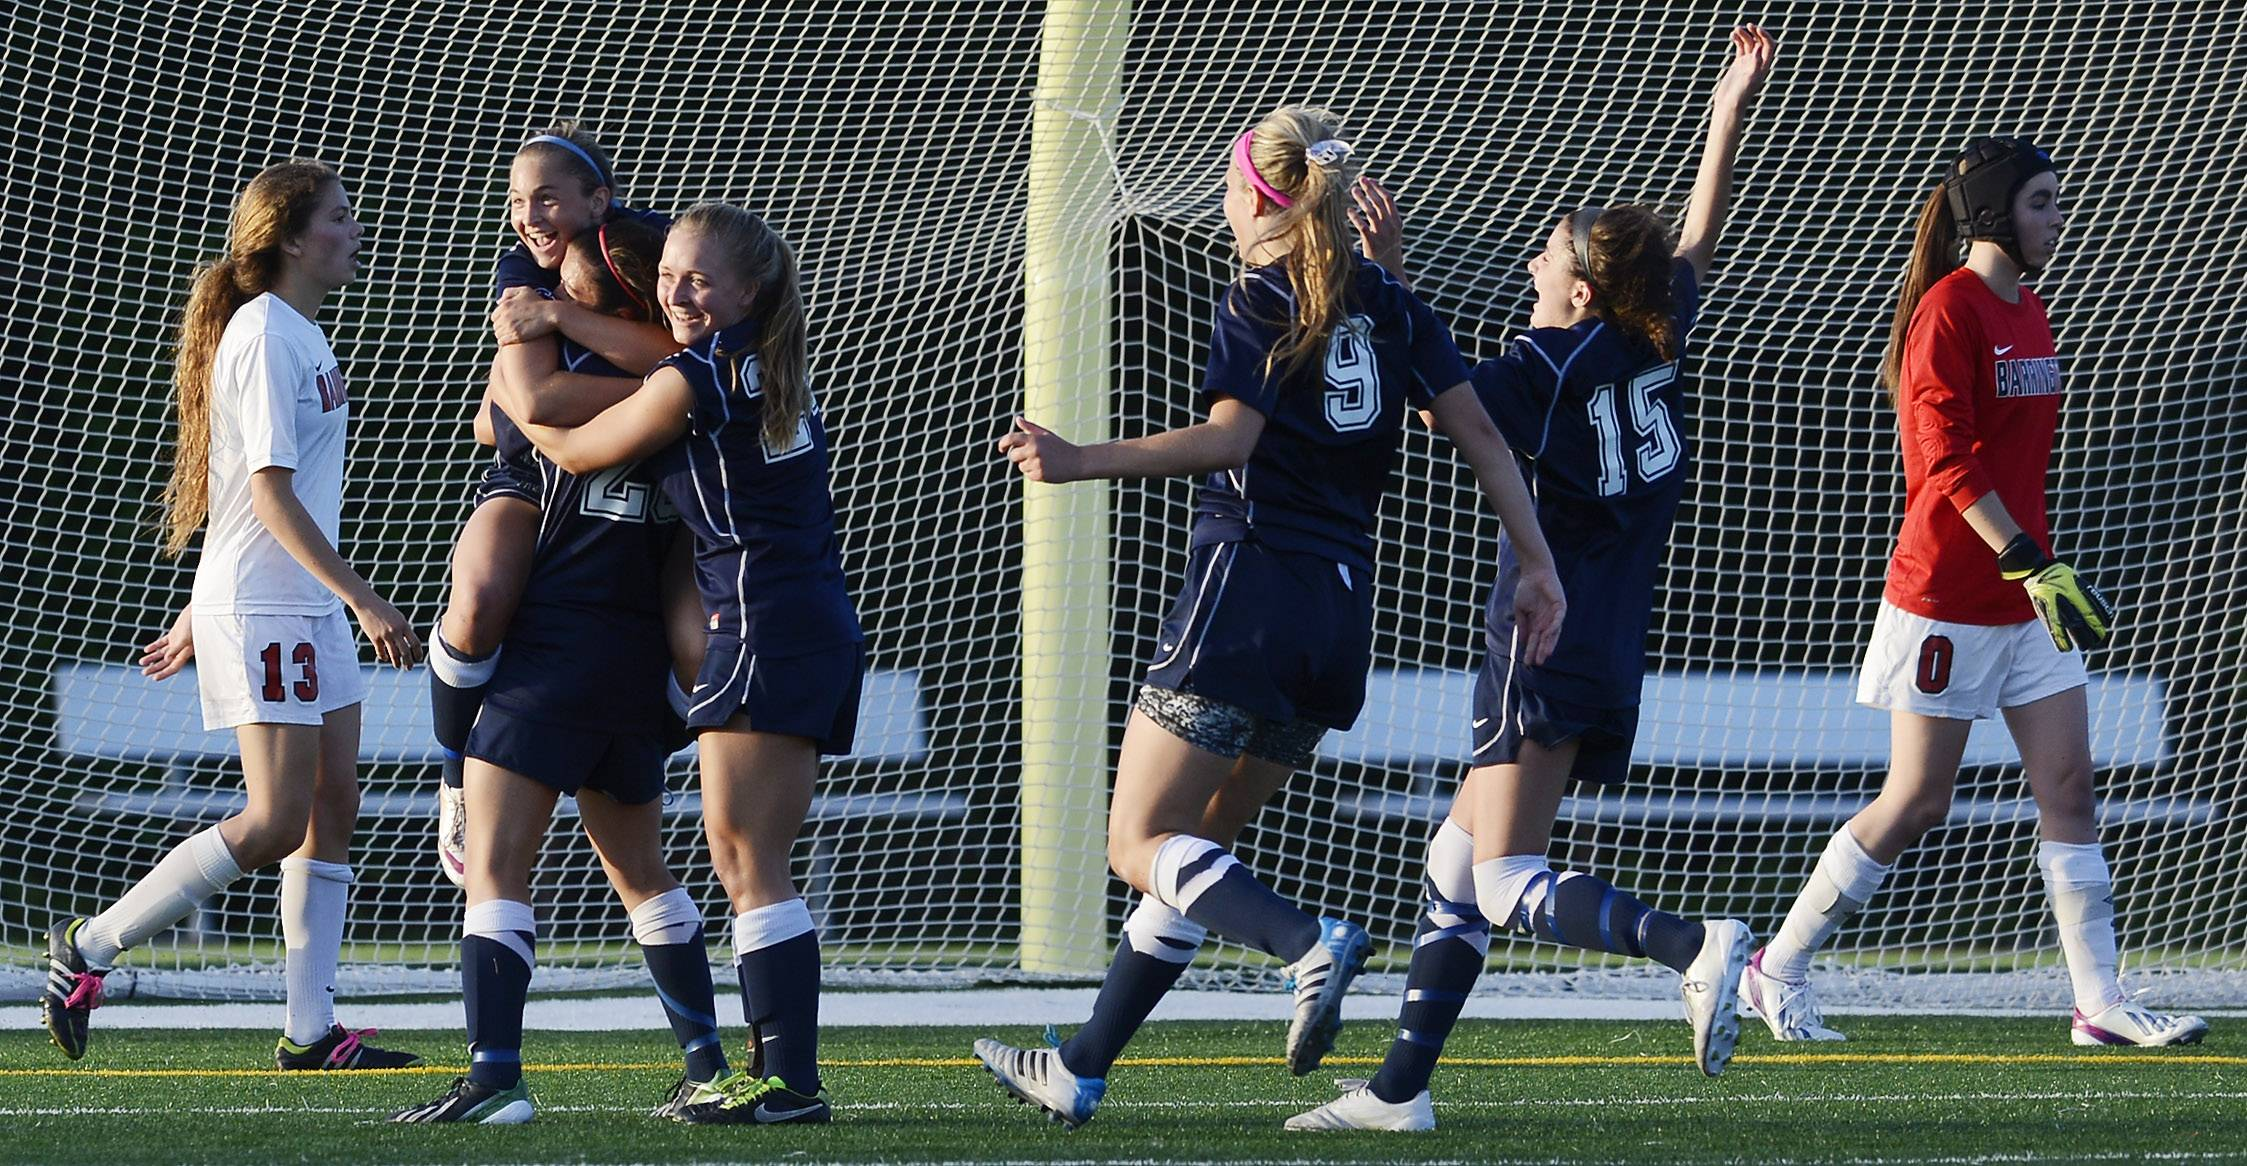 Barrington's Kelsey Muniz, left, and goalkeeper Hannah Luedtke, right, walk past New Trier players celebrating their team's goal during the Class 3A supersectional game at Hersey on Tuesday.